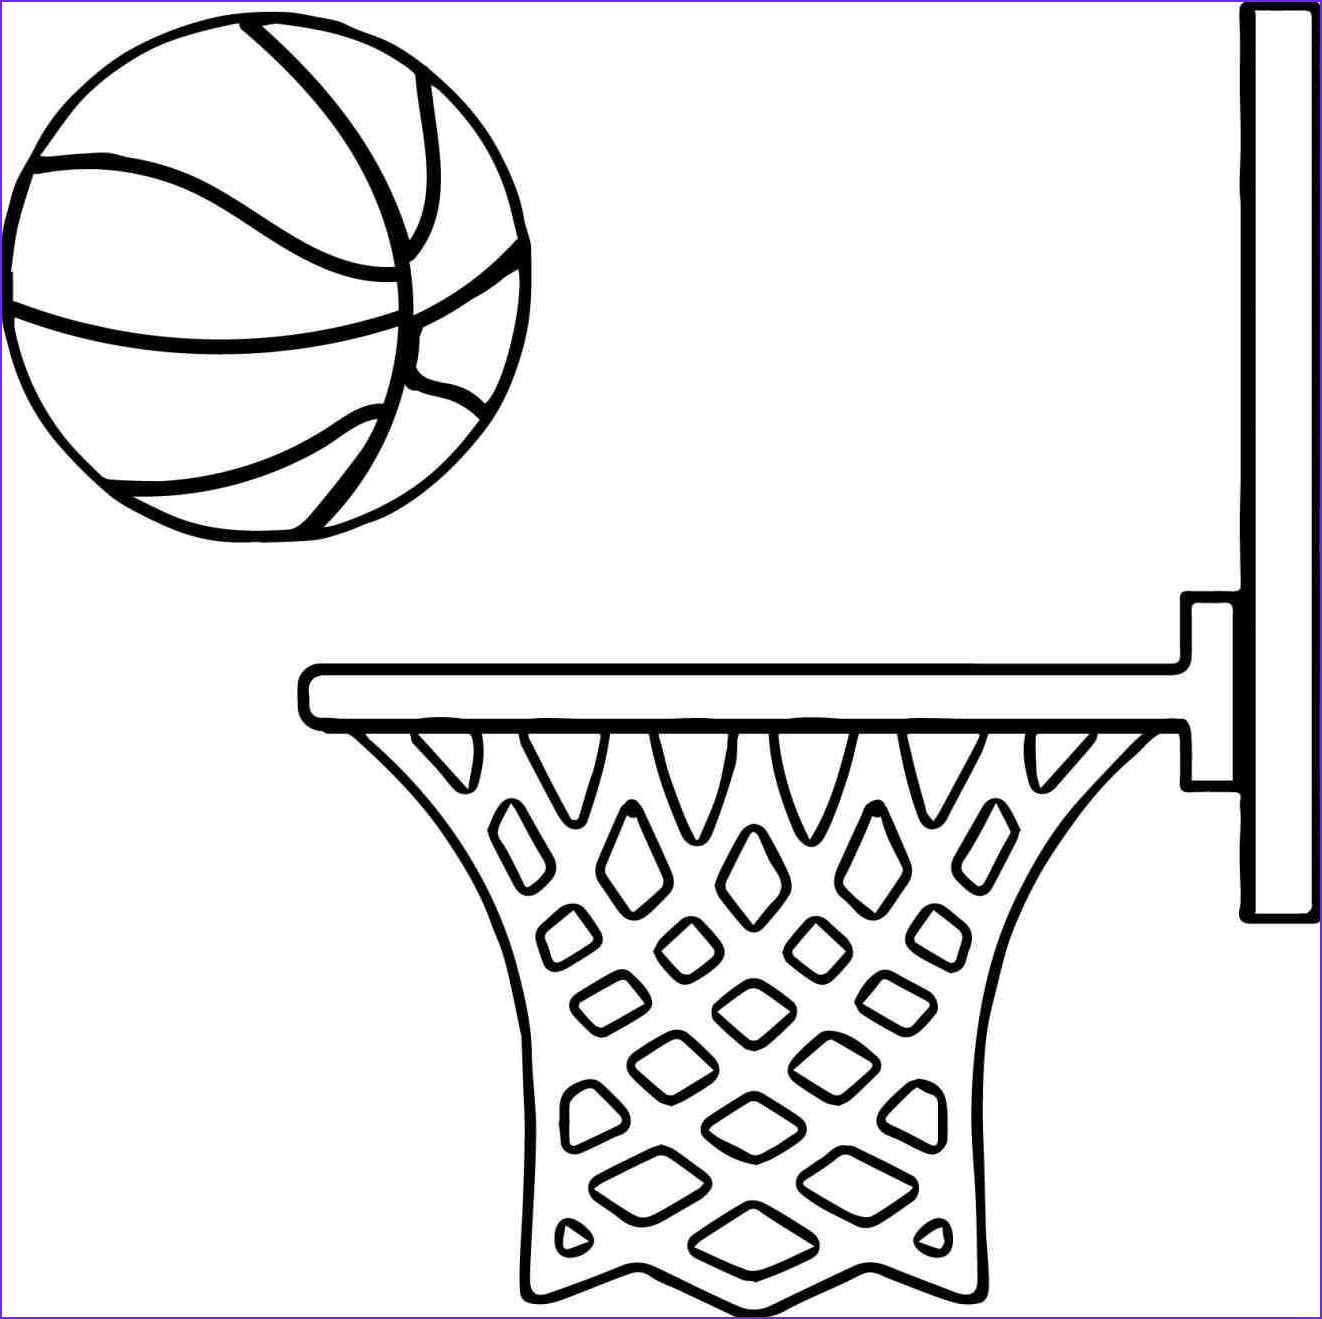 Stephen Curry Coloring Sheet New Image Stephen Curry Drawing